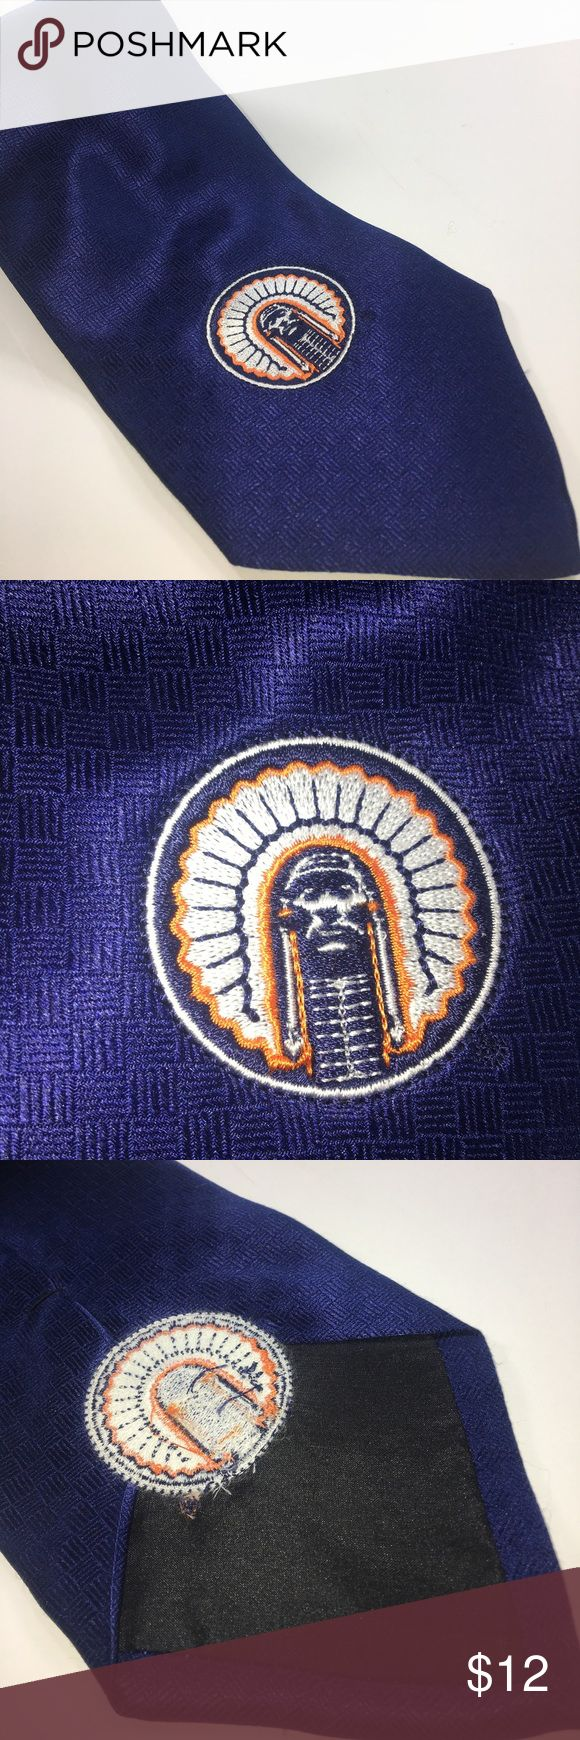 Fighting Illini Blue With Logo 100% Silk Tie Very Good Condition Some Normal Wear No Visible Stains Or Tearing See Pictures. T045 Merge Left Accessories Ties